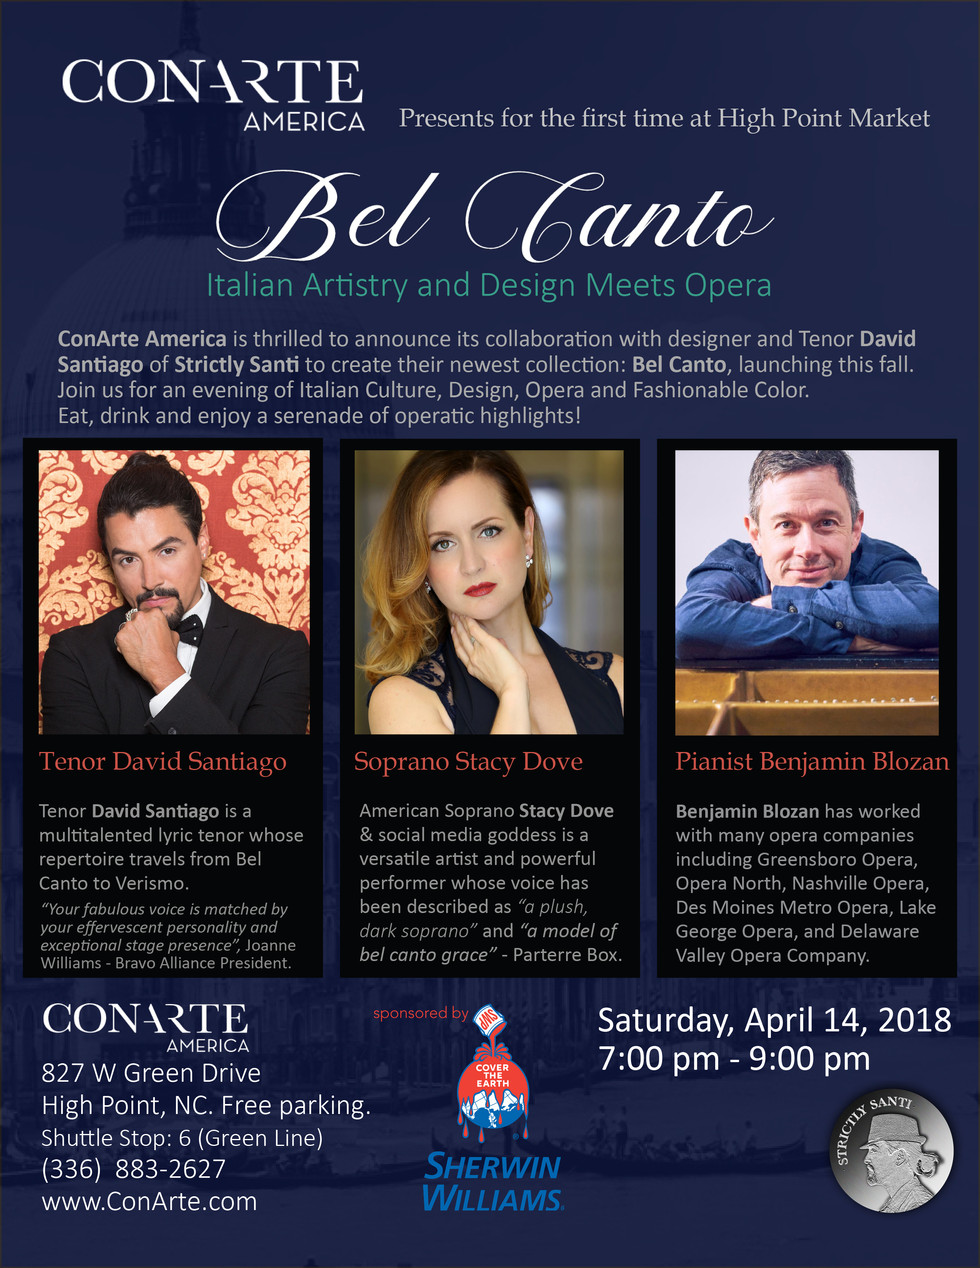 Bel Canto - The Concert